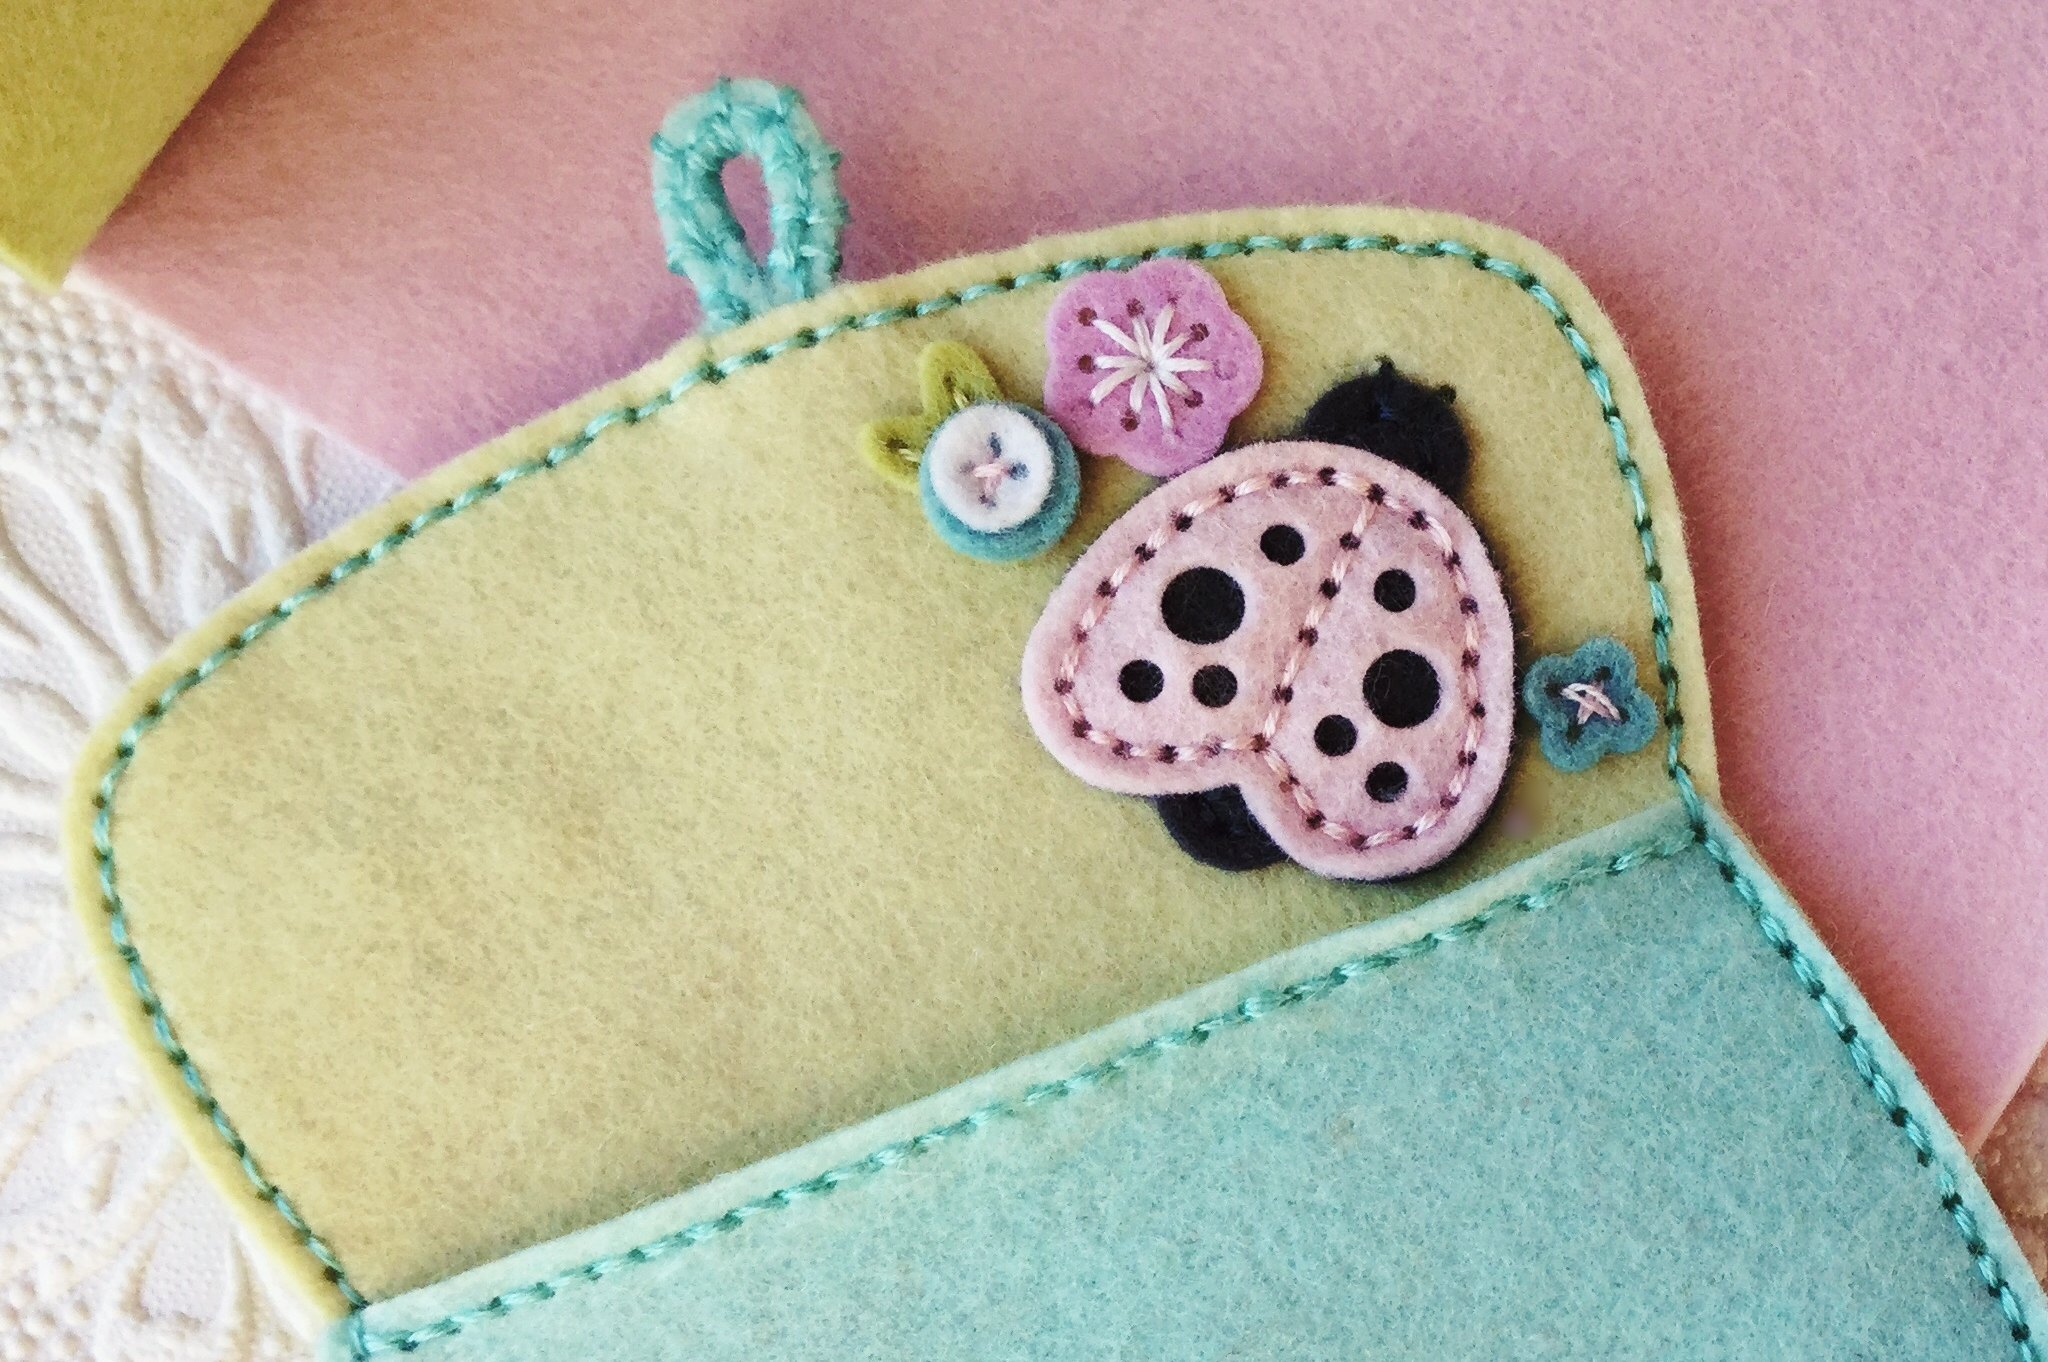 Sttiched Ladybug and Floral Cluster 1 on the inside of Copin Purse II Dies by Papertrey Ink